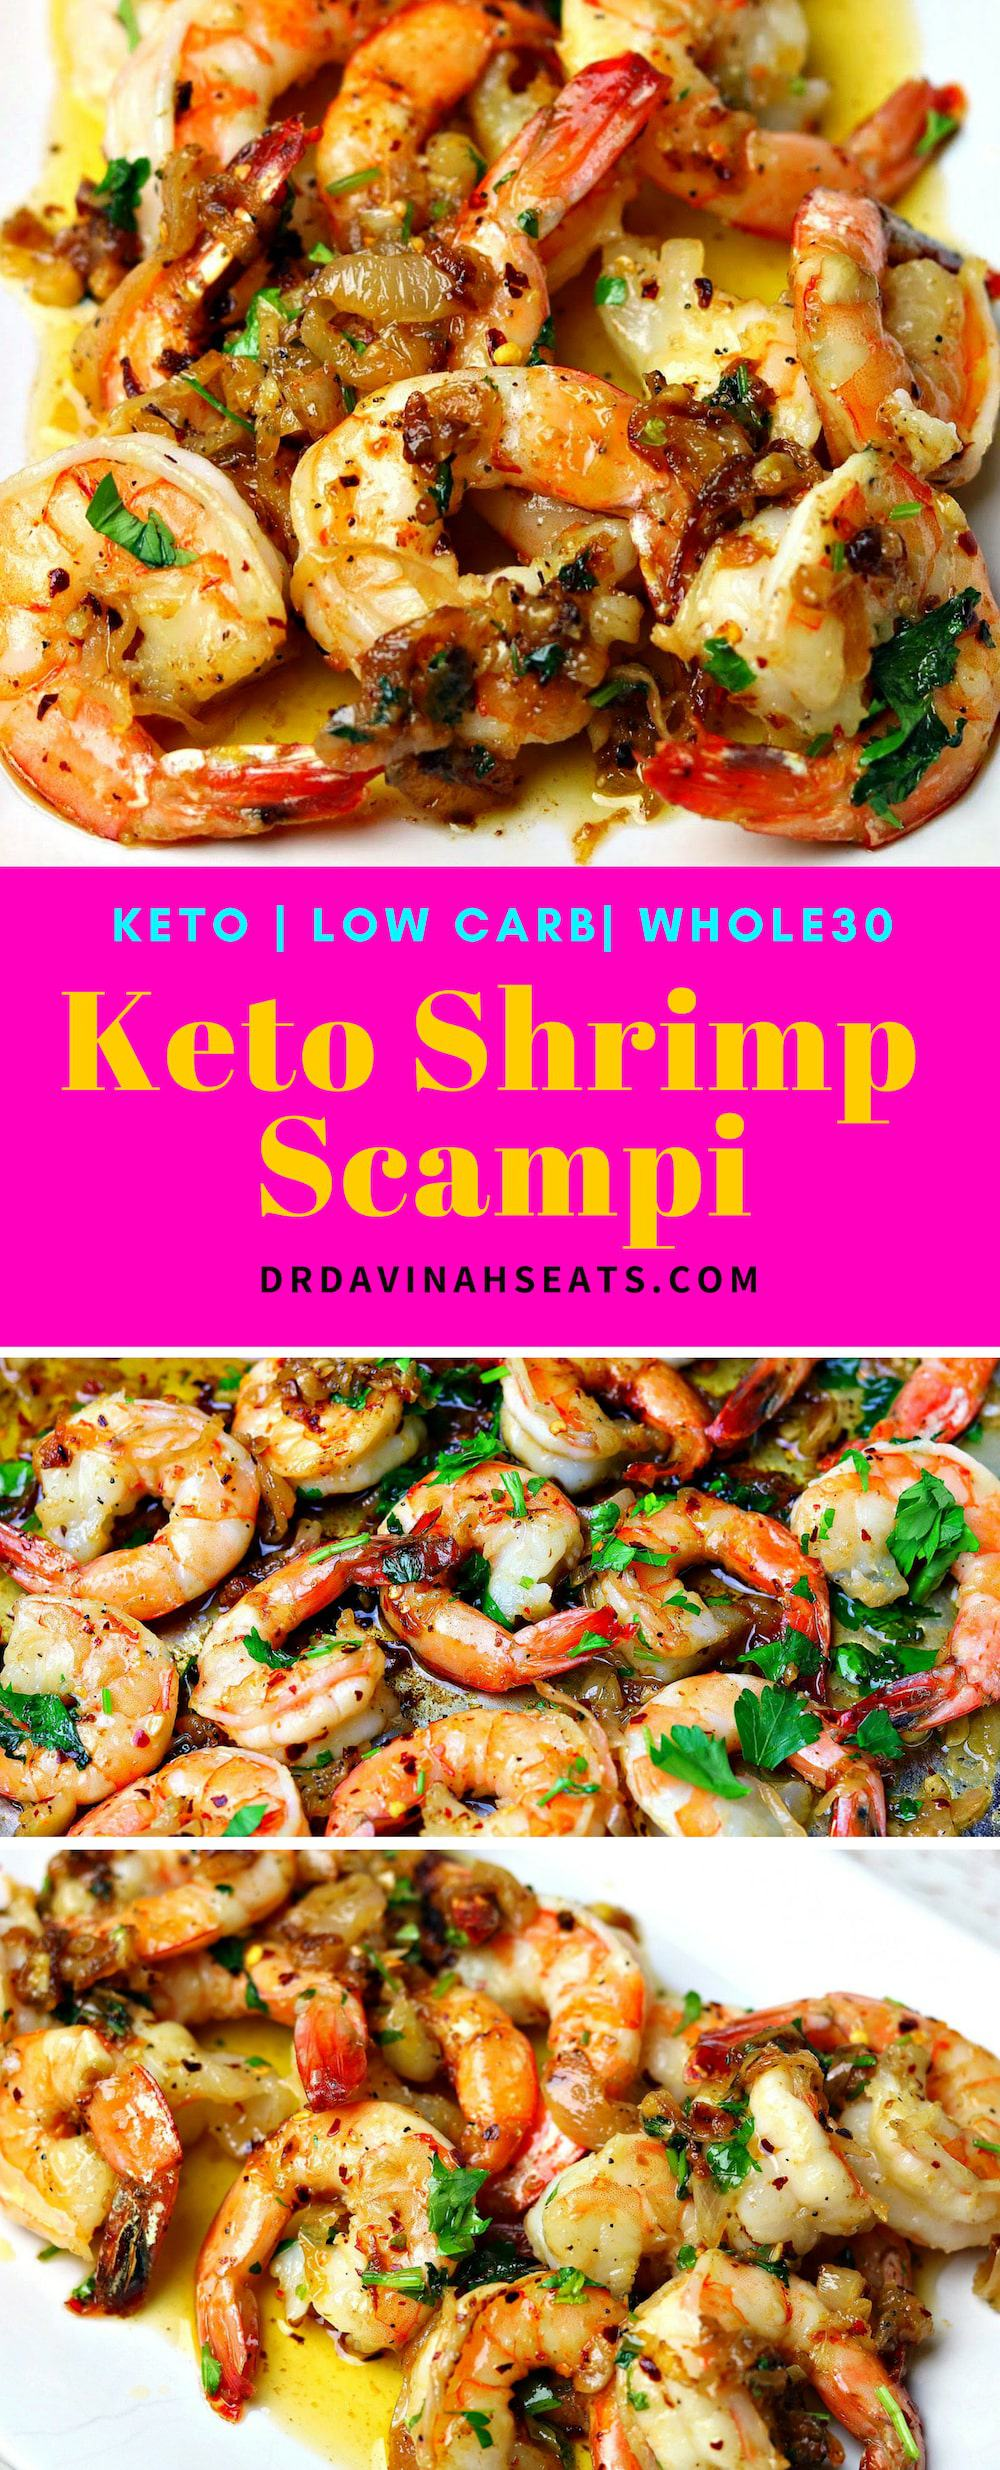 Love shrimp scampi, but want to stick to keto, low carb or Whole30? This easy, garlicky, and buttery Keto Shrimp Scampi recipe has all the tips to keep you on track. #shrimp #keto #ketoshrimprecipe #ketoshrimpscampi #shrimpscampi #whole30recipe #whole30 #lowcarb